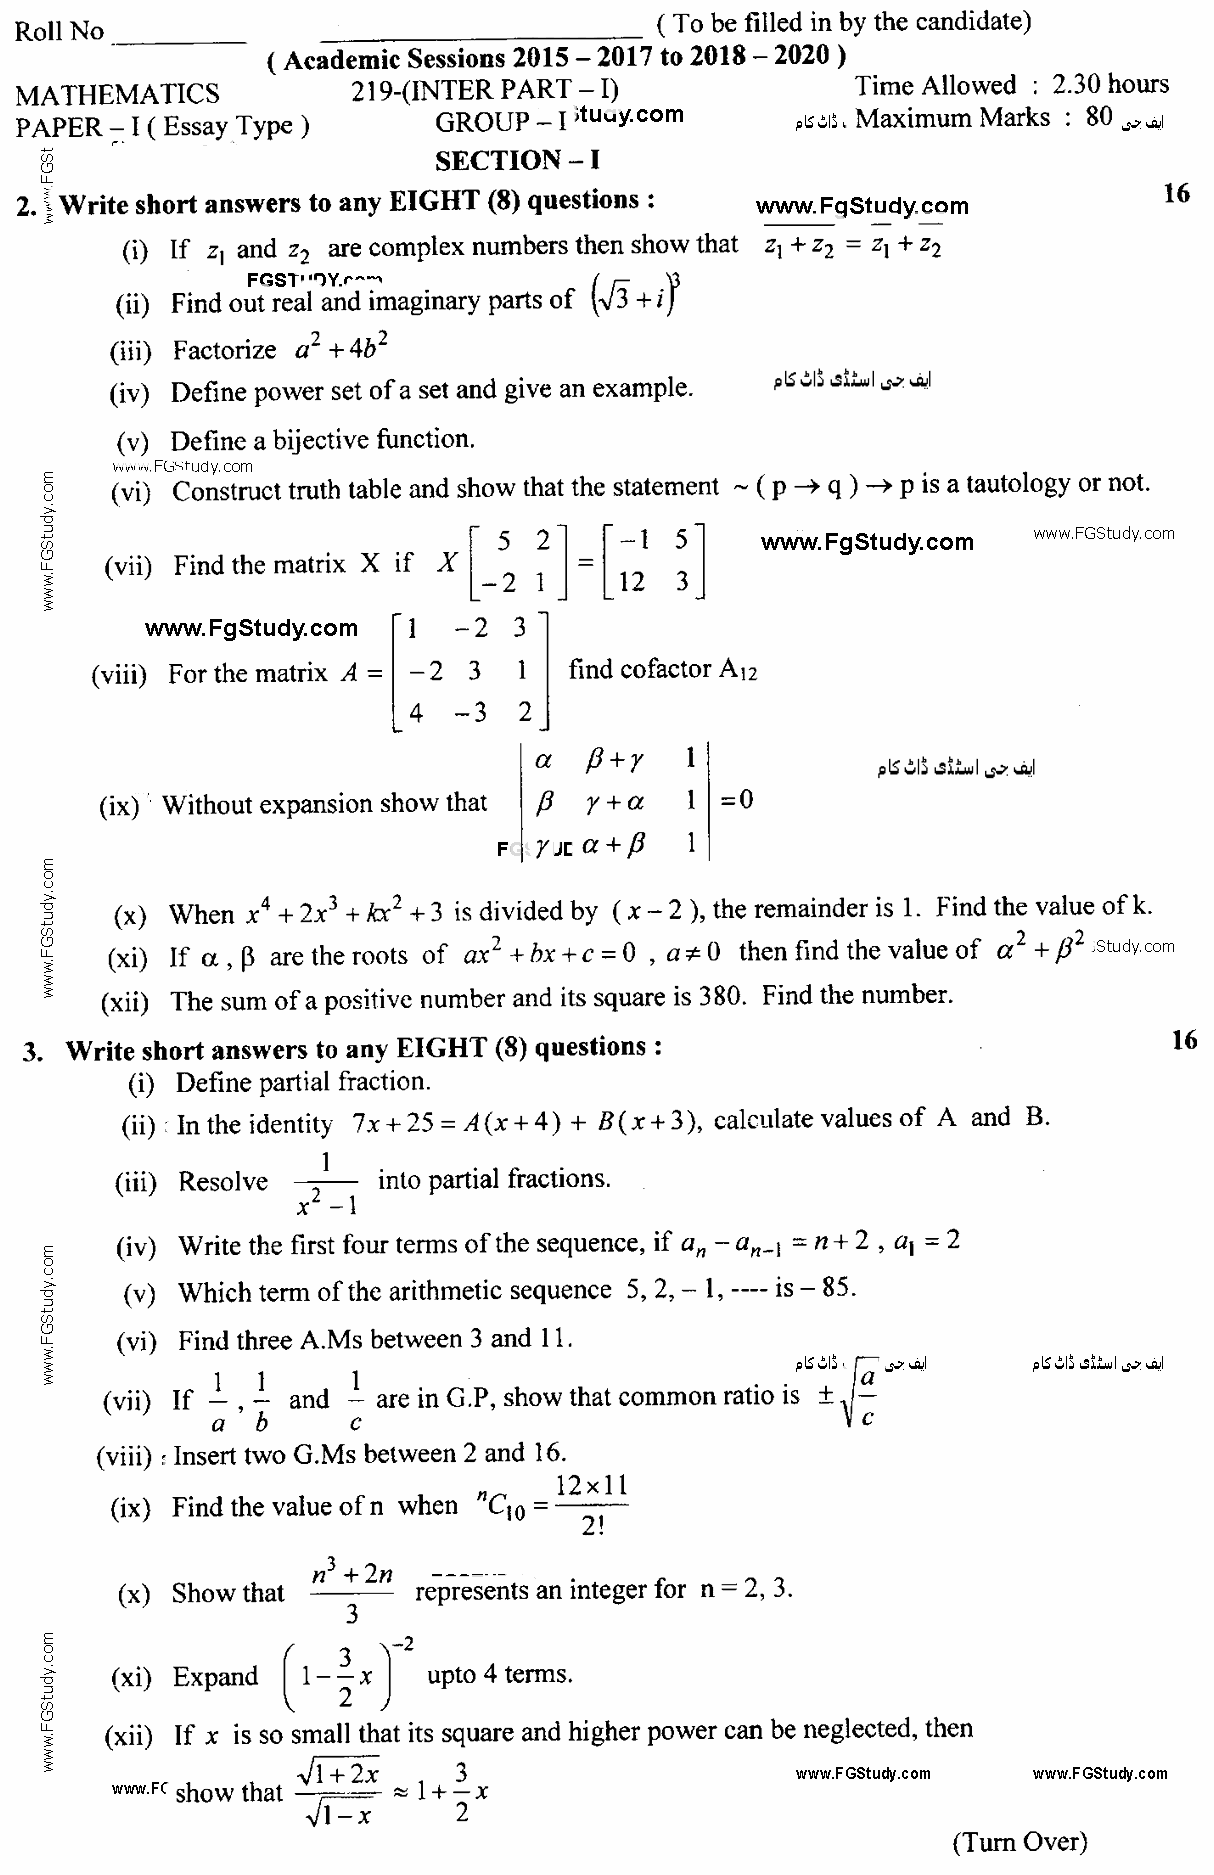 Mathematics Subjective Group 1 11th Class Past Papers 2019